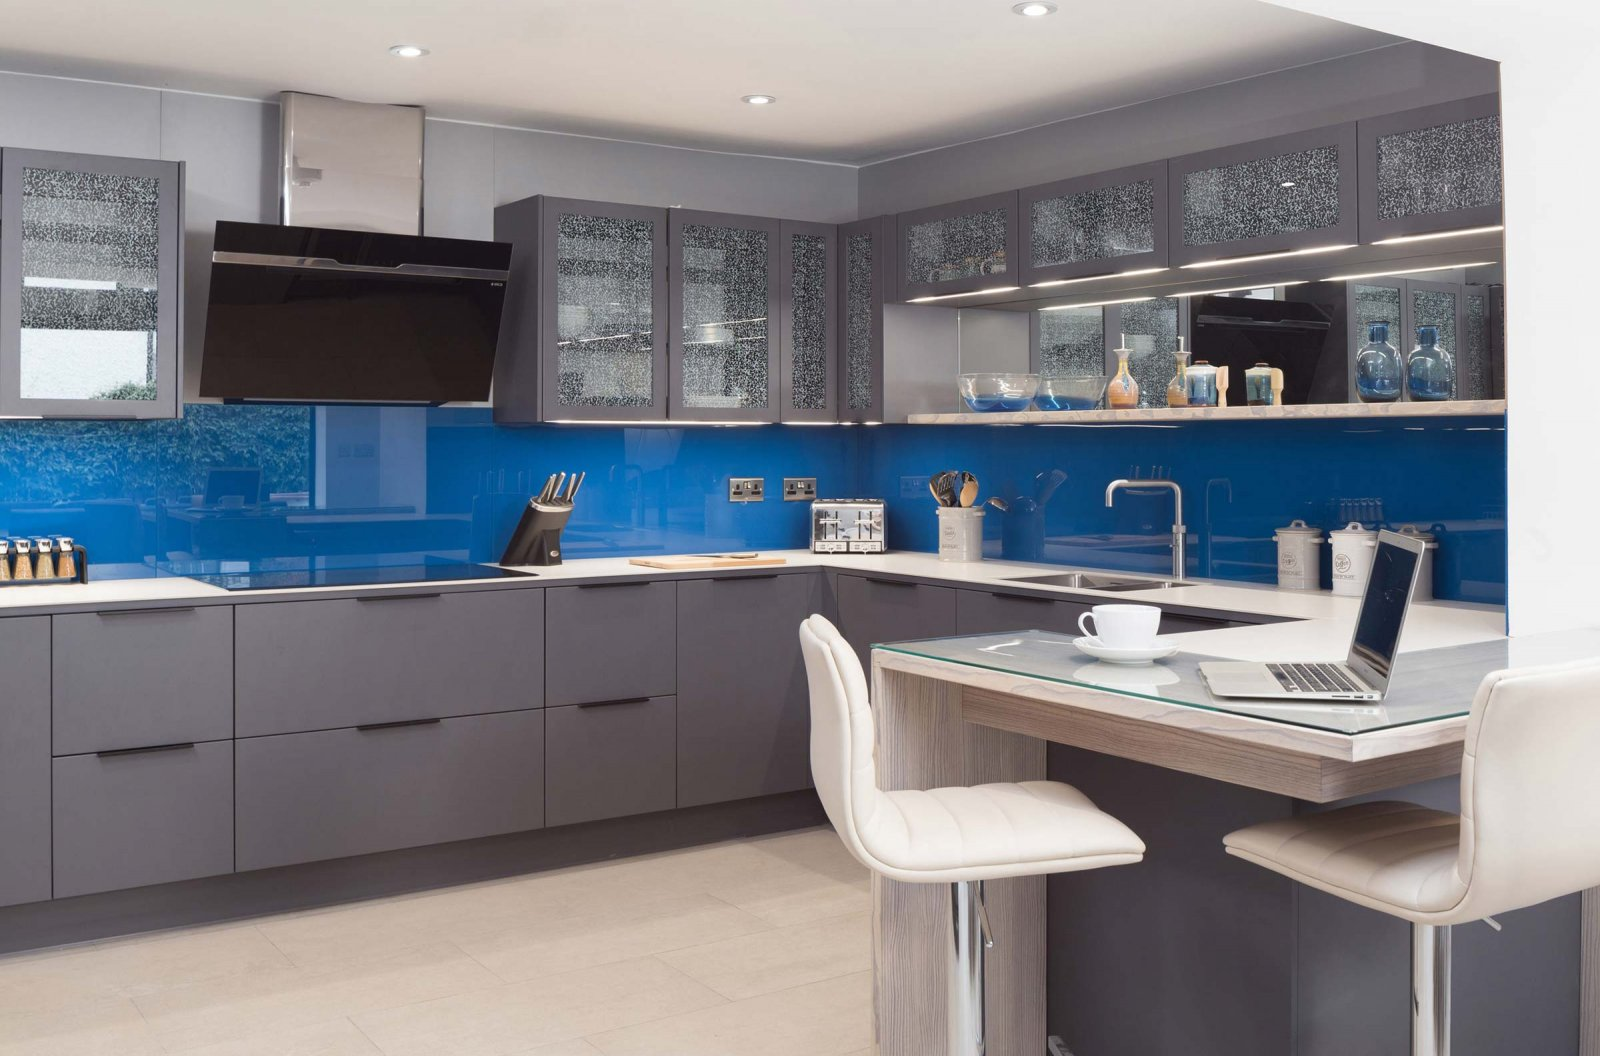 Miinus eco friendly kitchen matt grey units white ceramic worktop and blue ceramic splashback